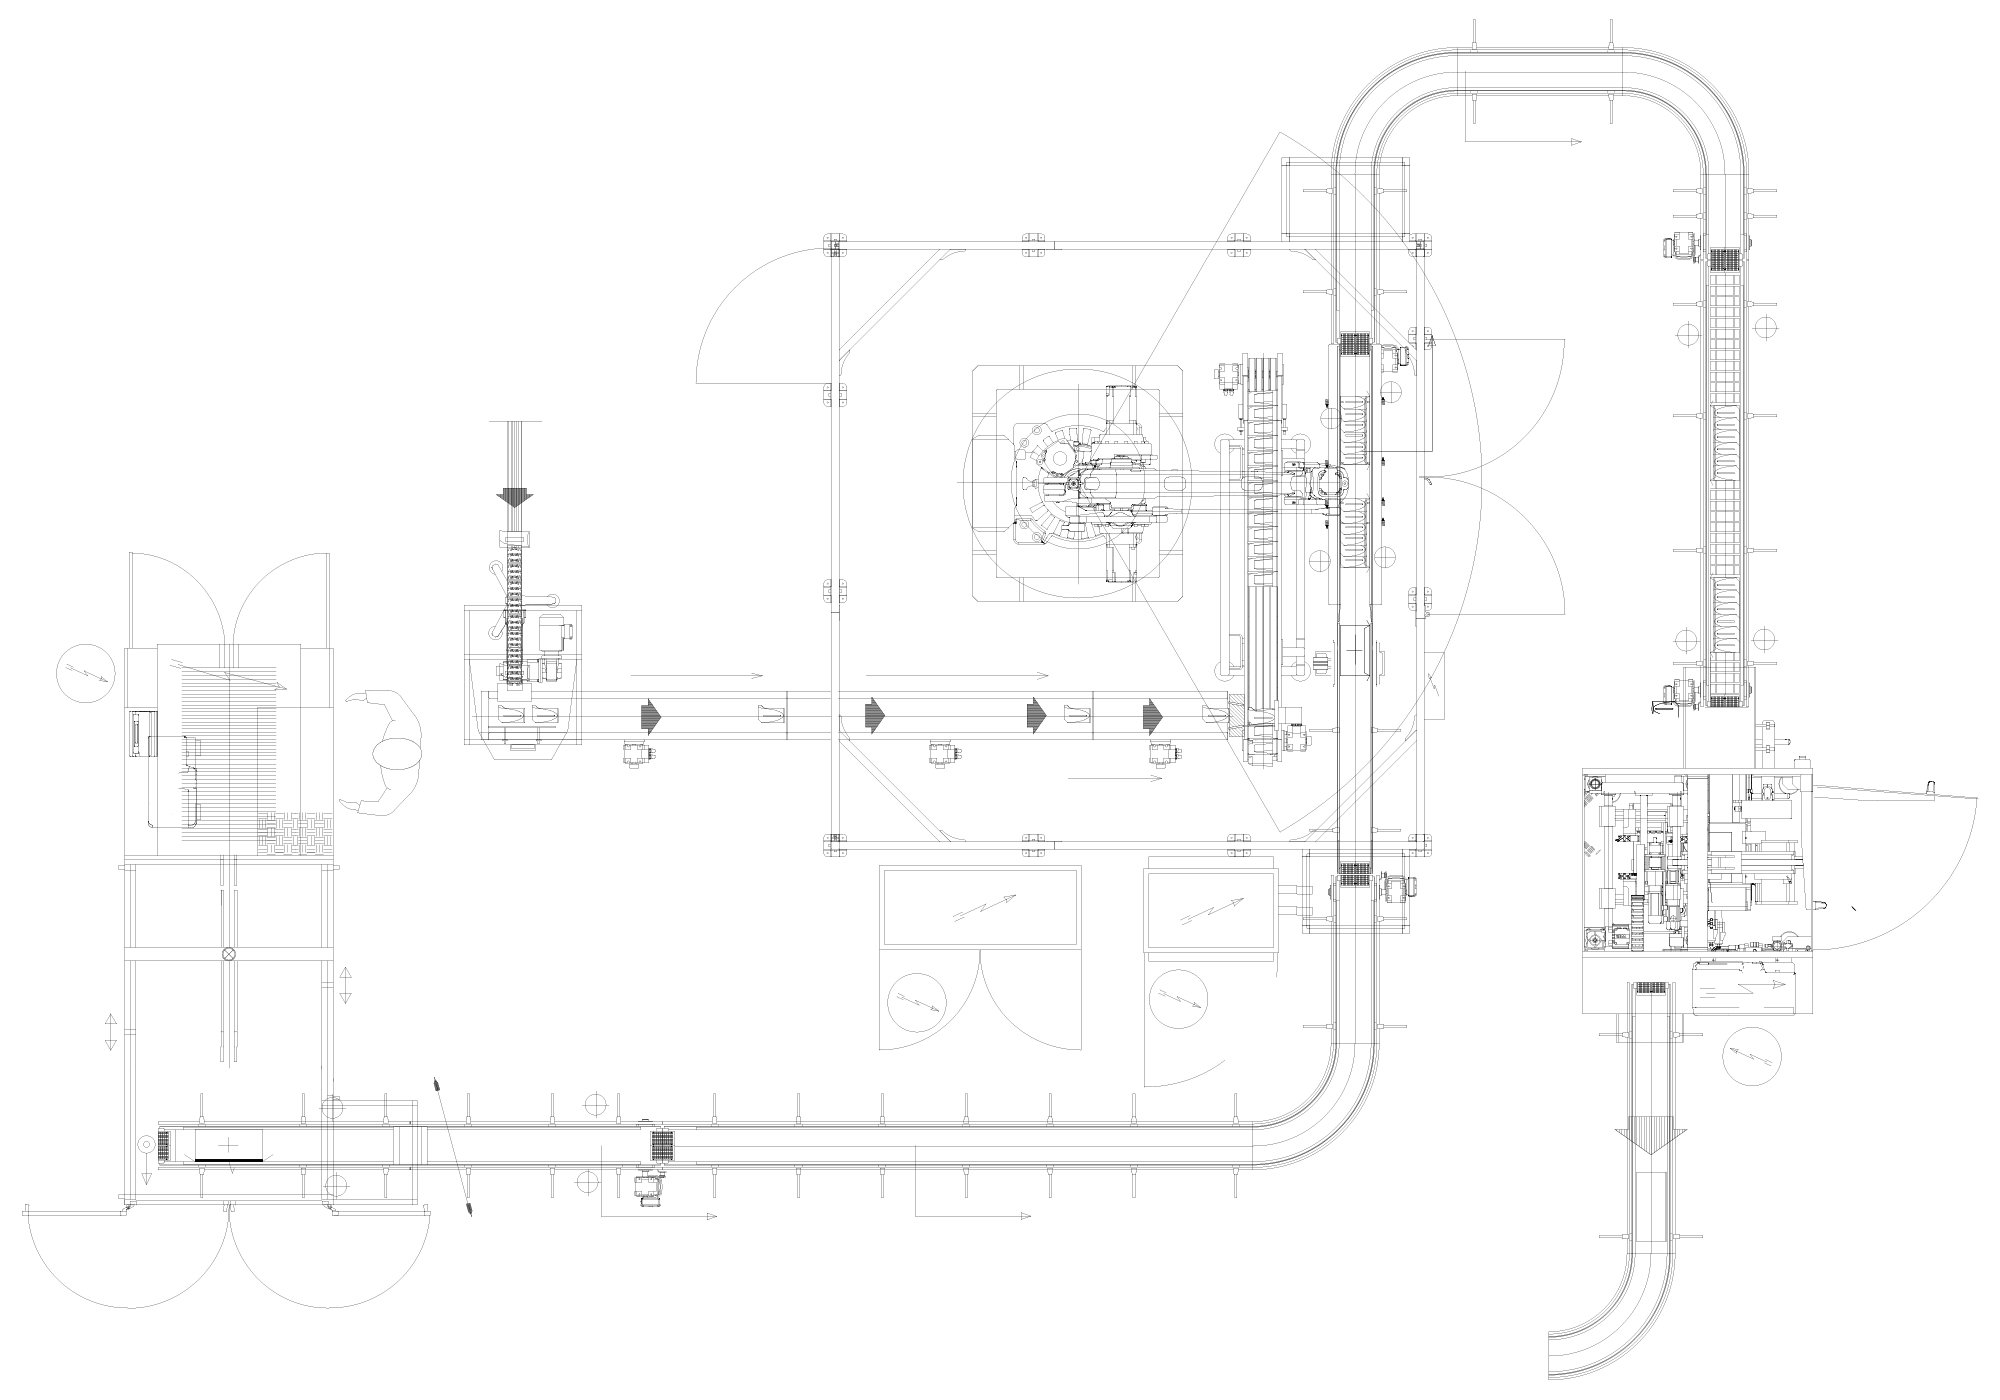 Pouches line layout - Mariani Srl